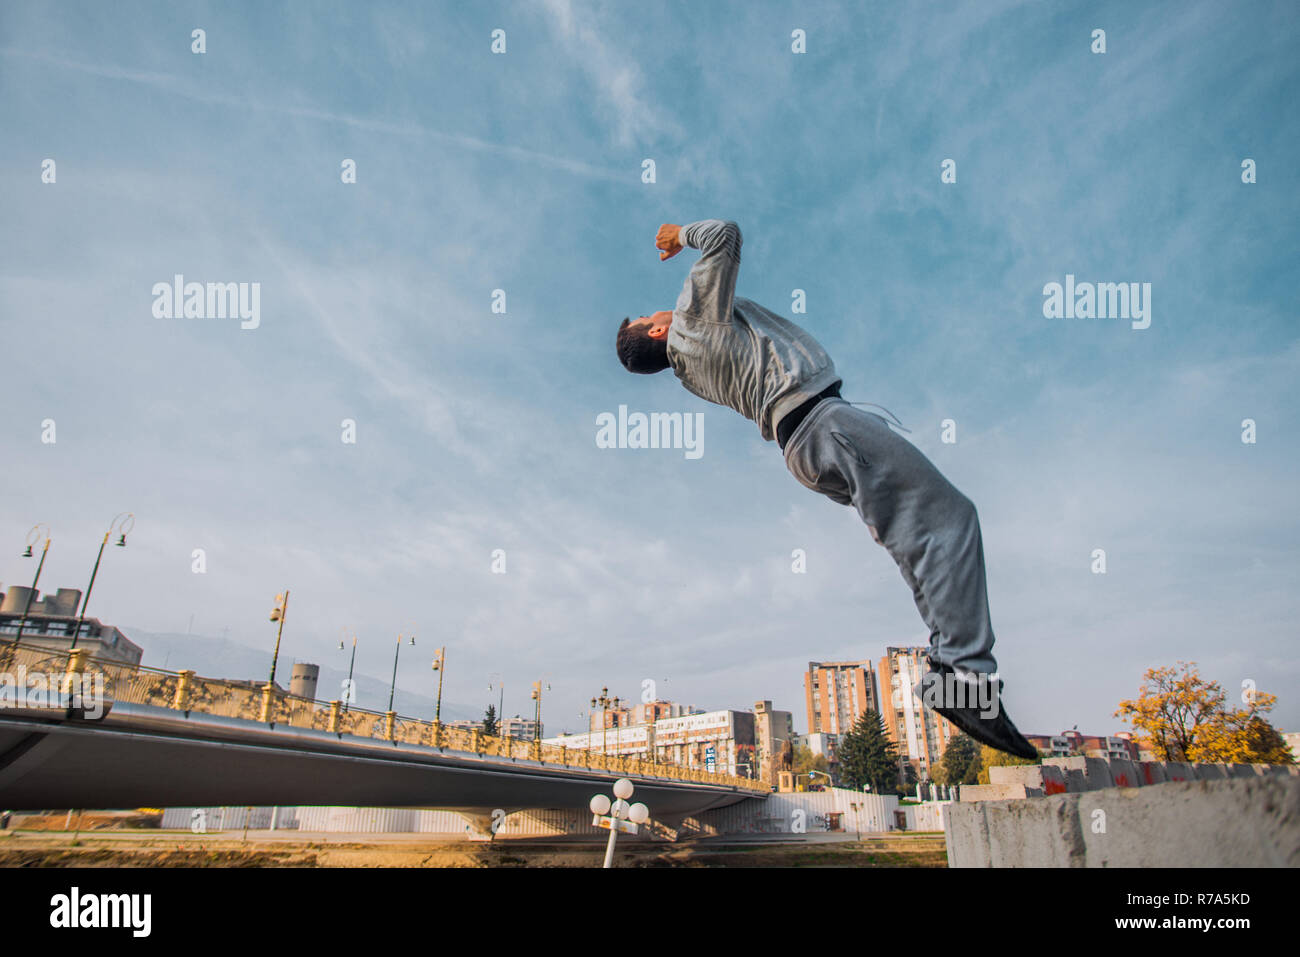 Traceur training parkour jumping at urban place - Stock Image